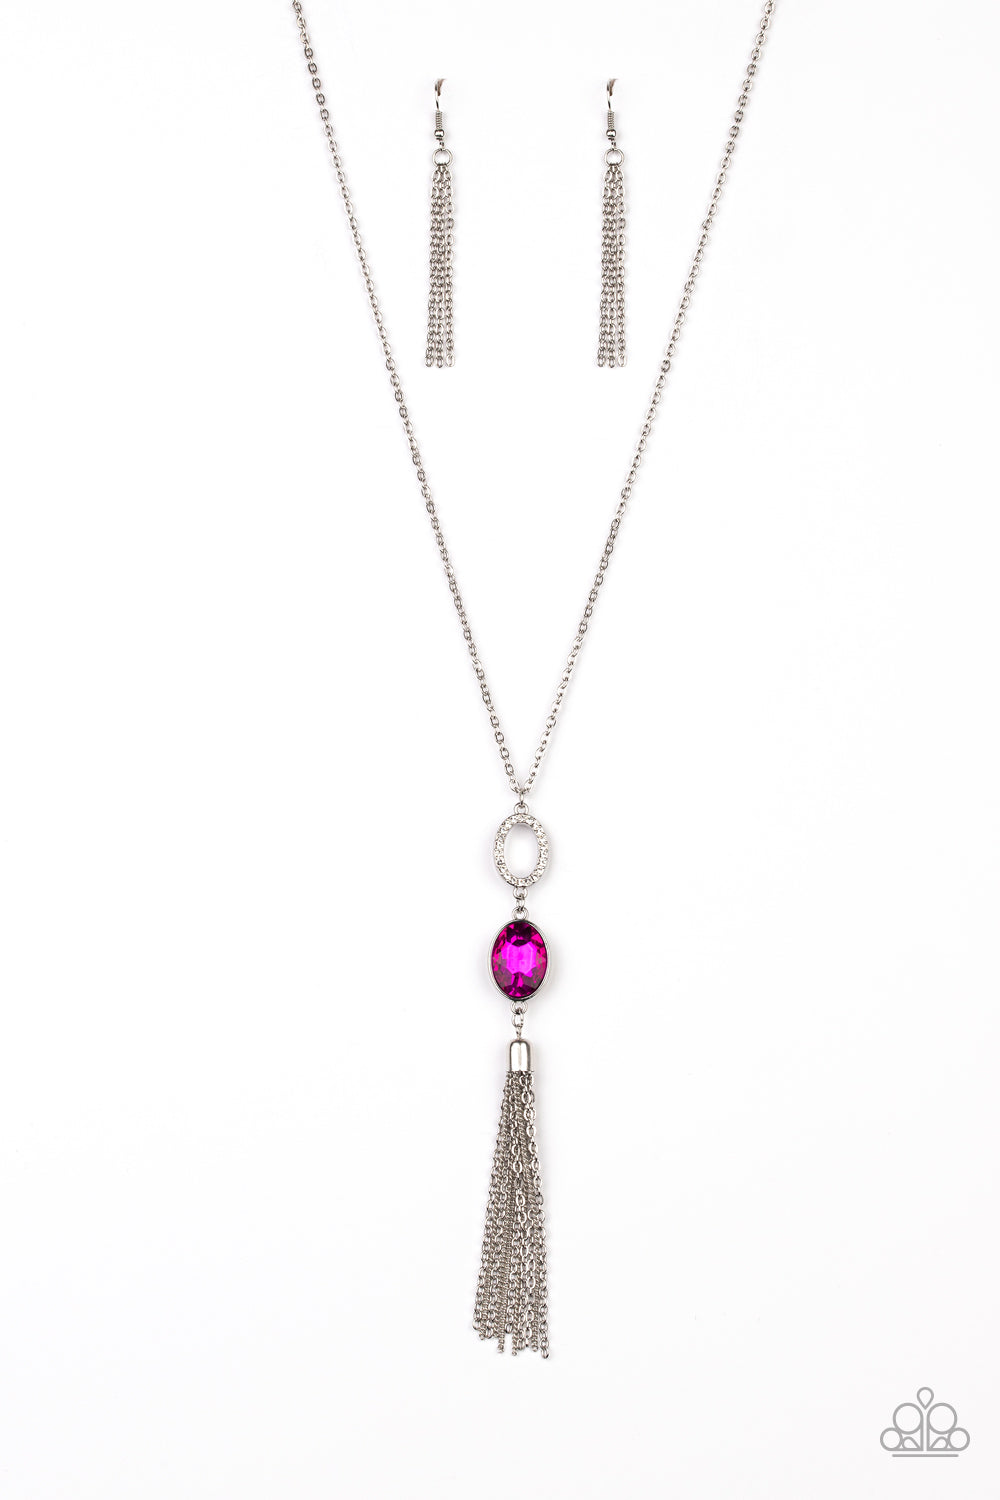 Paparazzi Necklace ~ Unstoppable Glamour - Pink